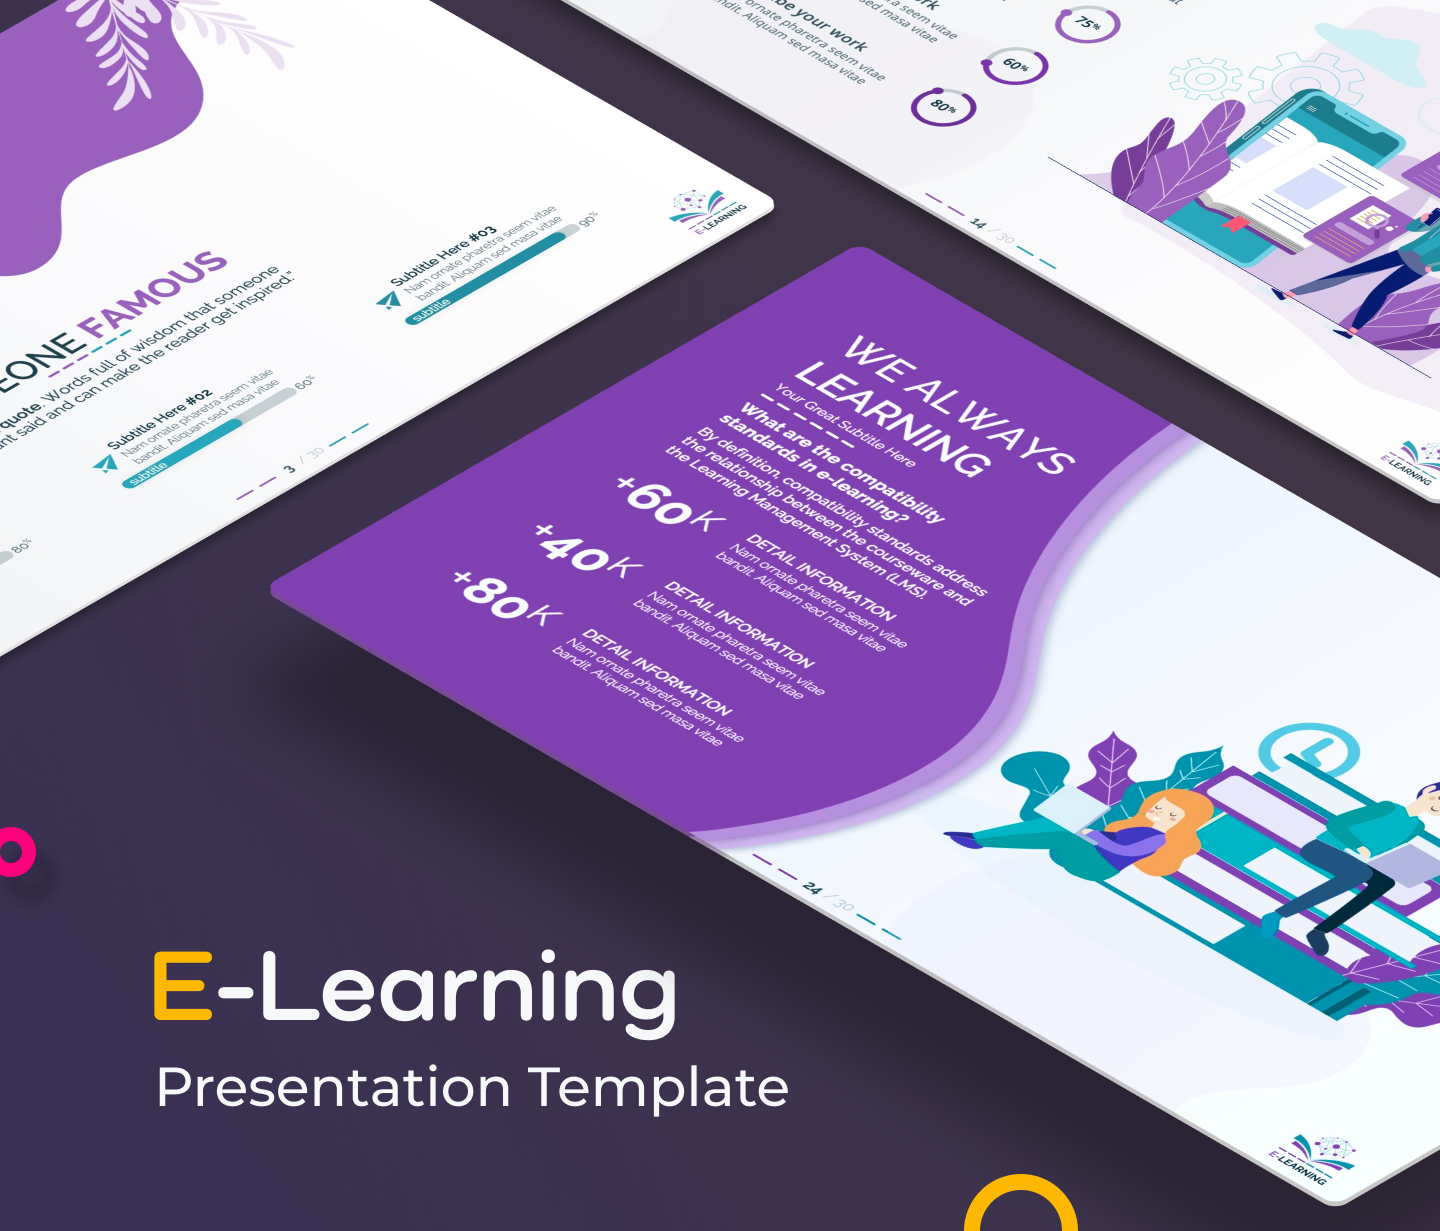 E-Learning PowerPoint Presentation Template (Education PPT)